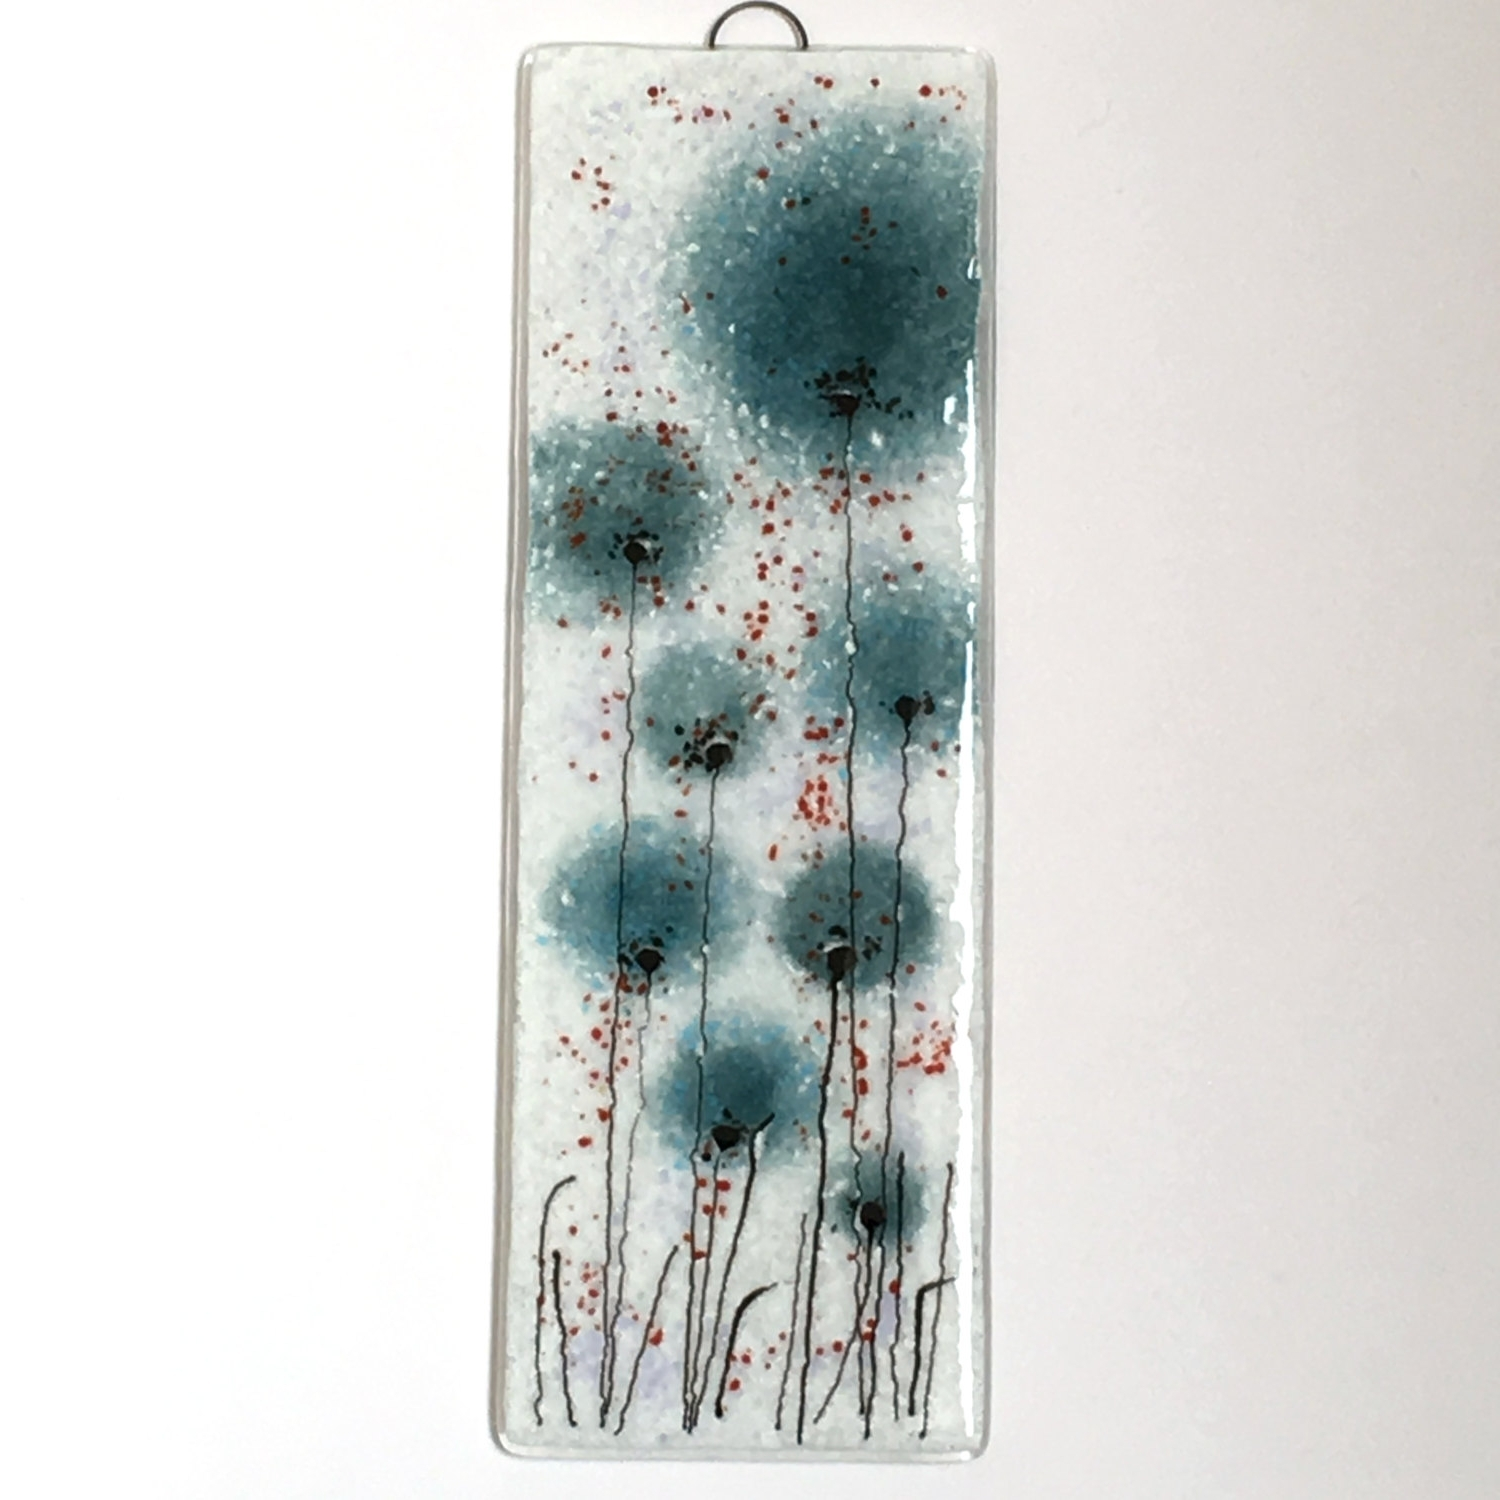 2018 Fused Glass Wall Art Hanging Within Aquamarine Flowers Fused Glass Wall Art – Fused Glass Picture (View 5 of 15)